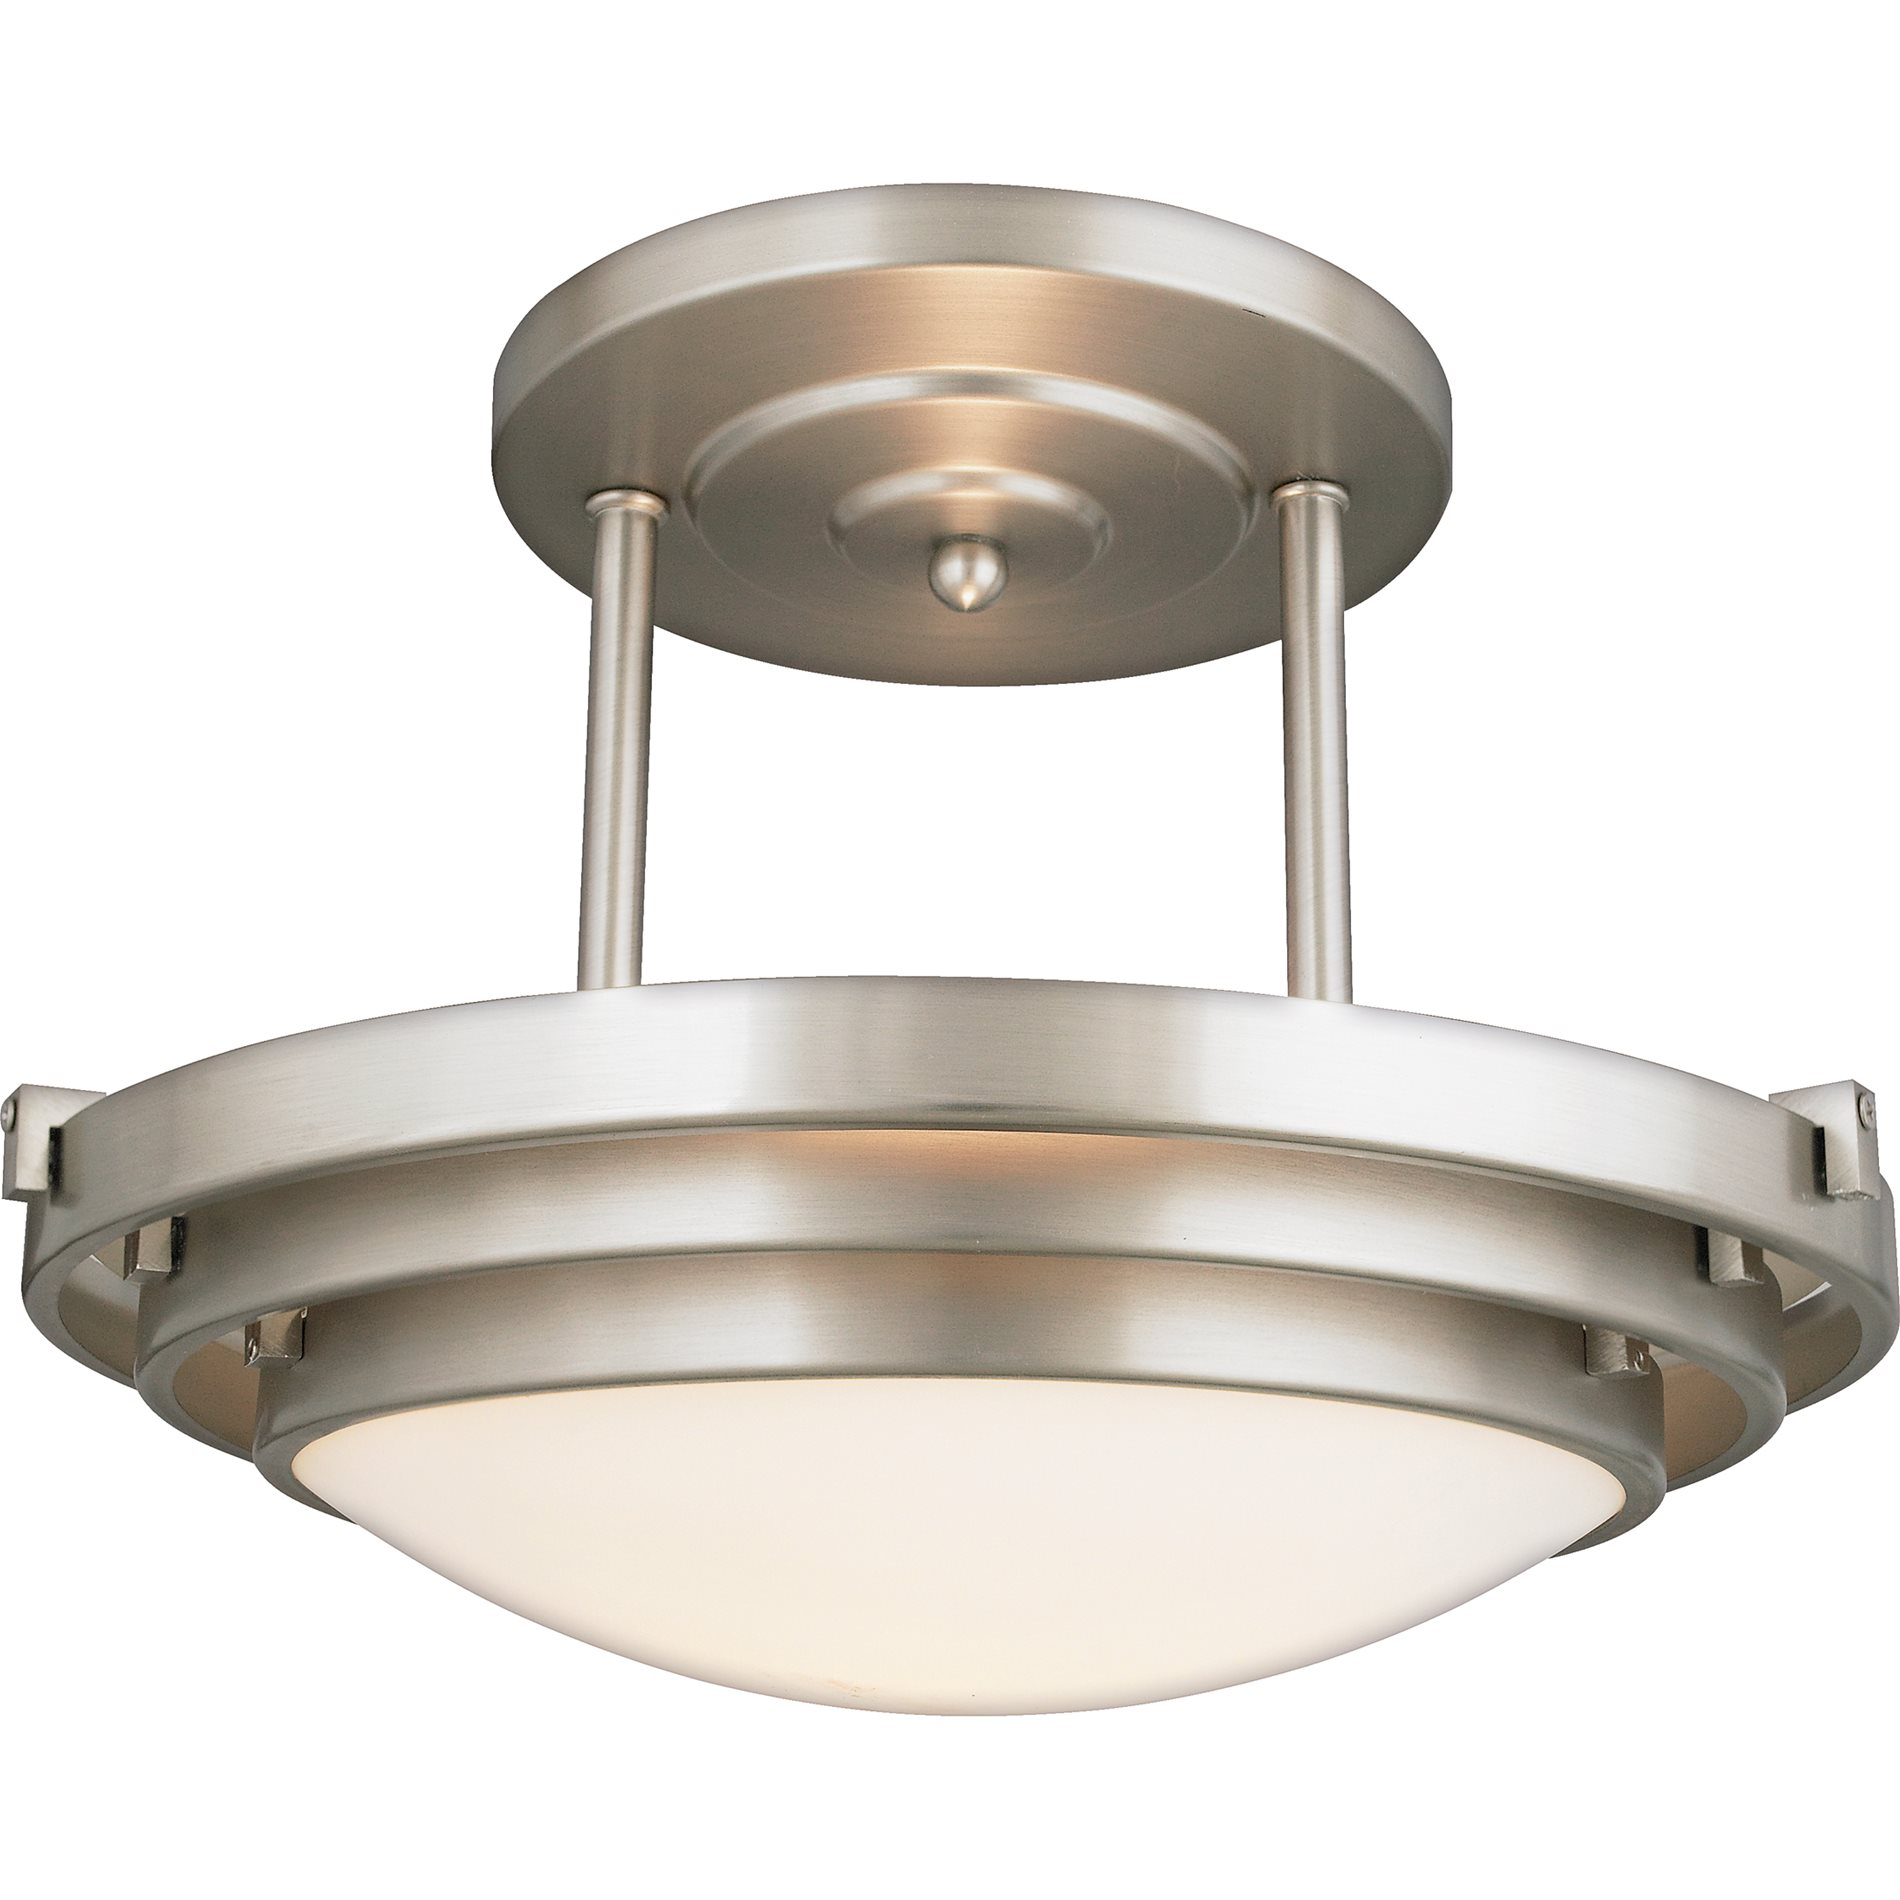 Quoizel el1284cb electra modern contemporary semi flush for Semi flush mount lighting modern